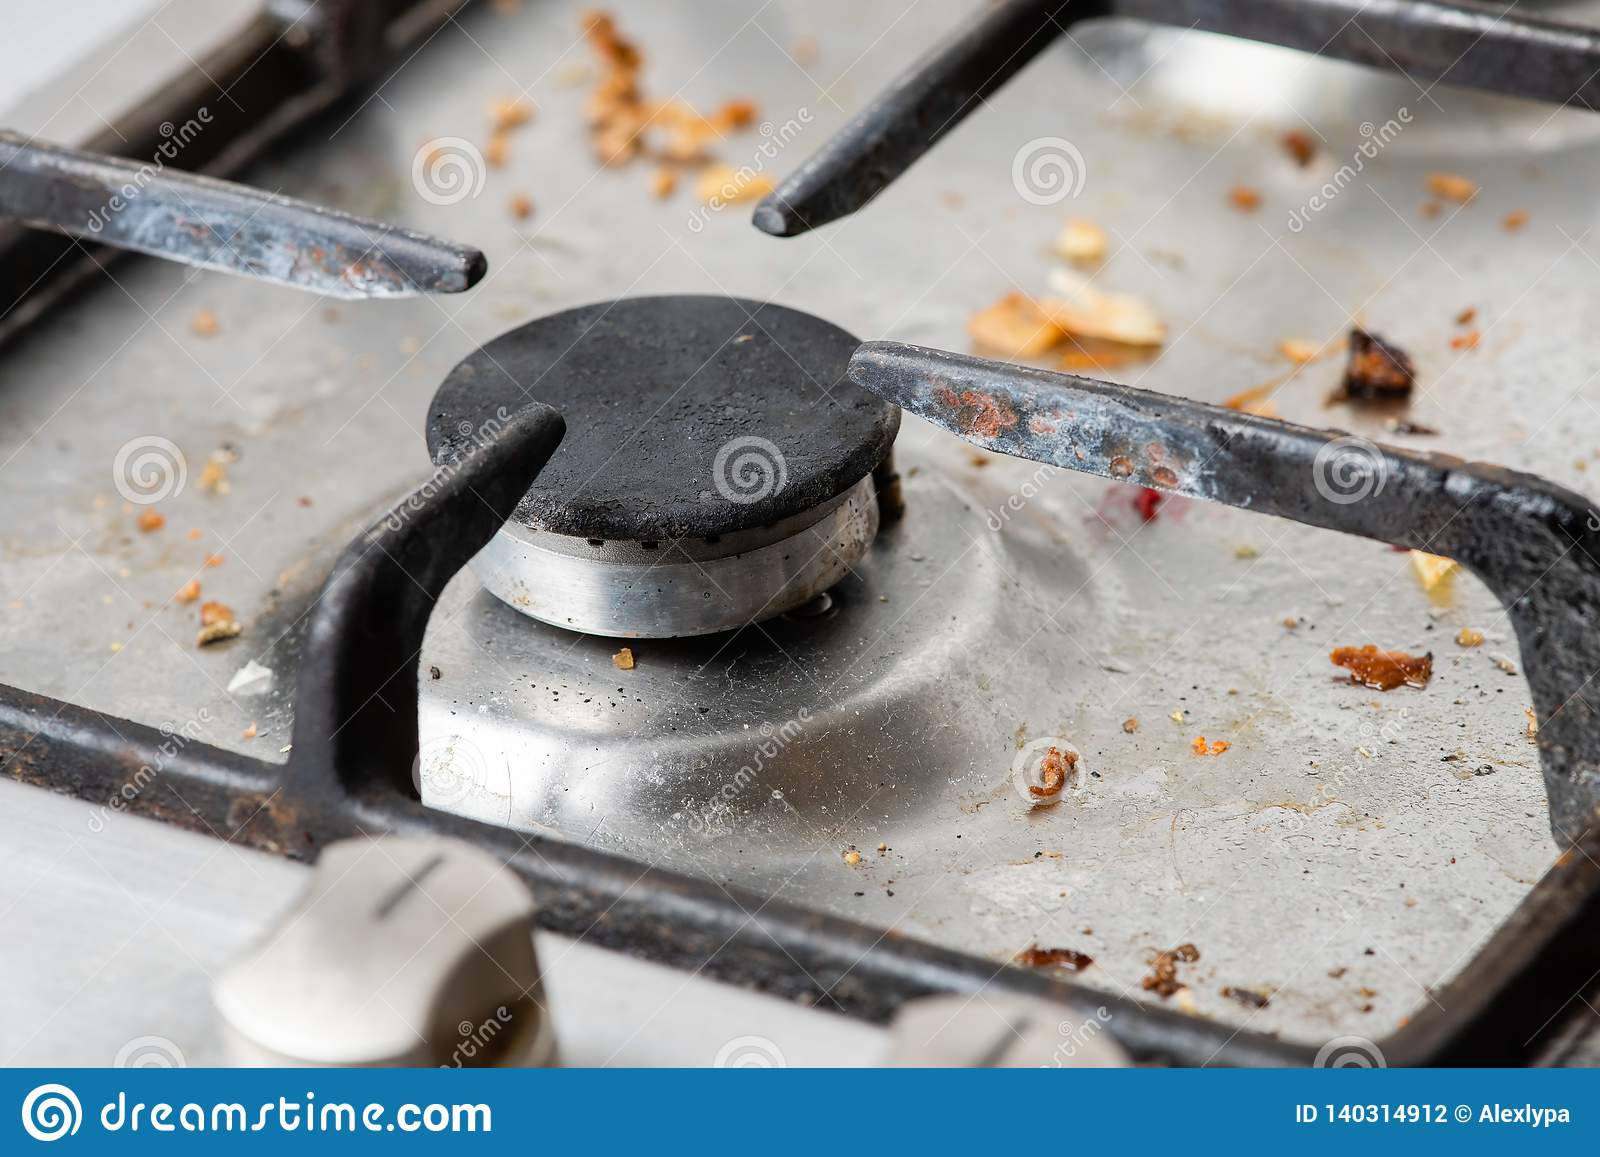 Dirty Modern Gas Stove With A Cast-iron Grill Stock Photo